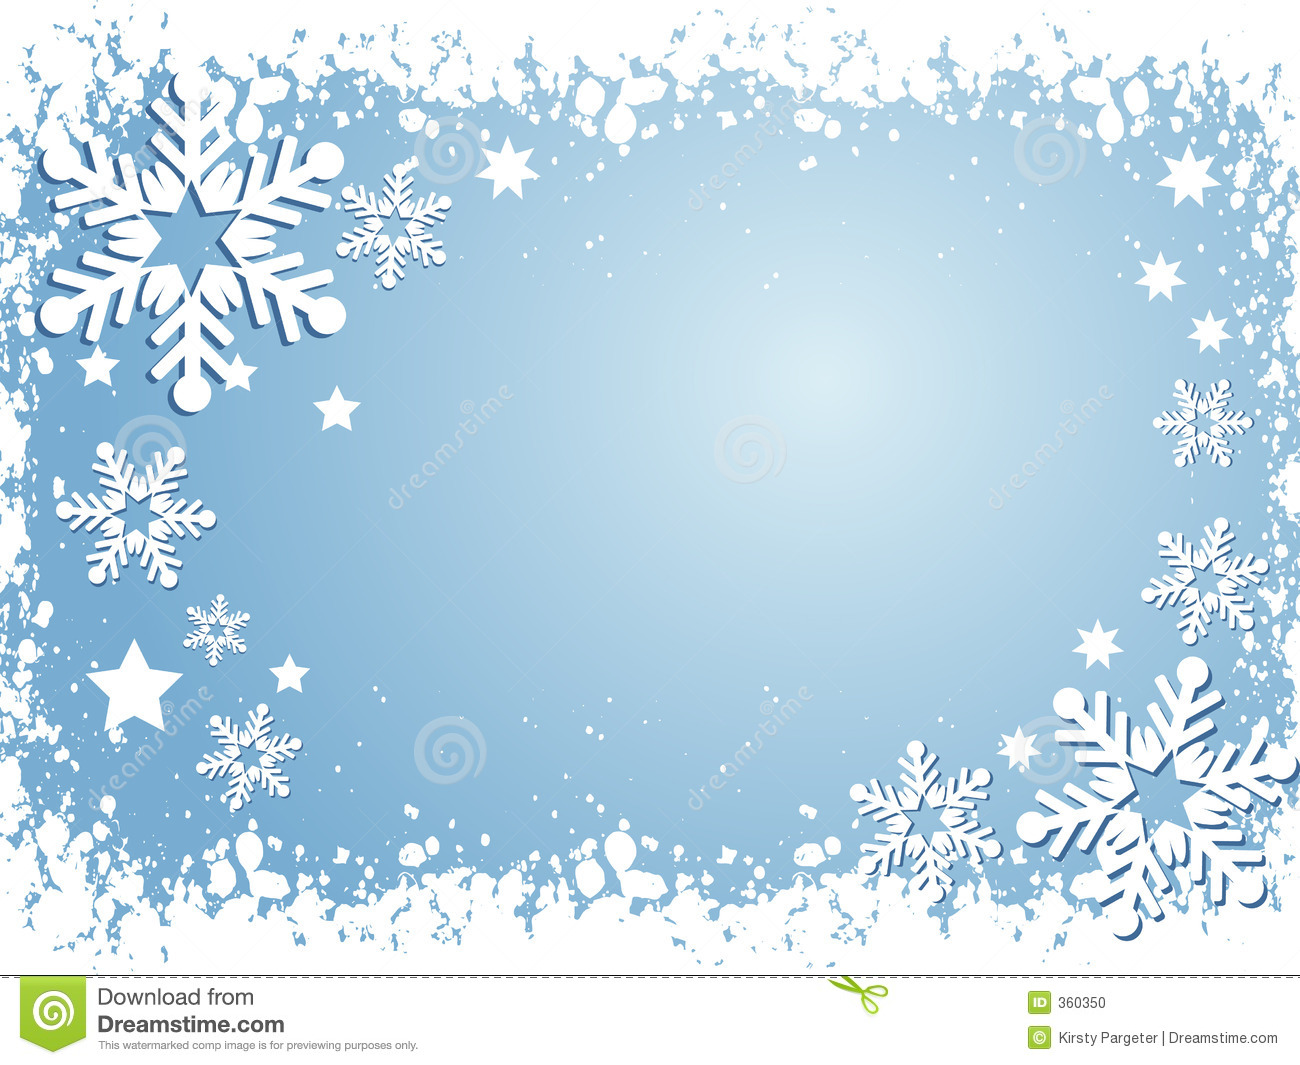 Themed Background With Snowflakes And Stars Mr No Pr No 5 12223 67